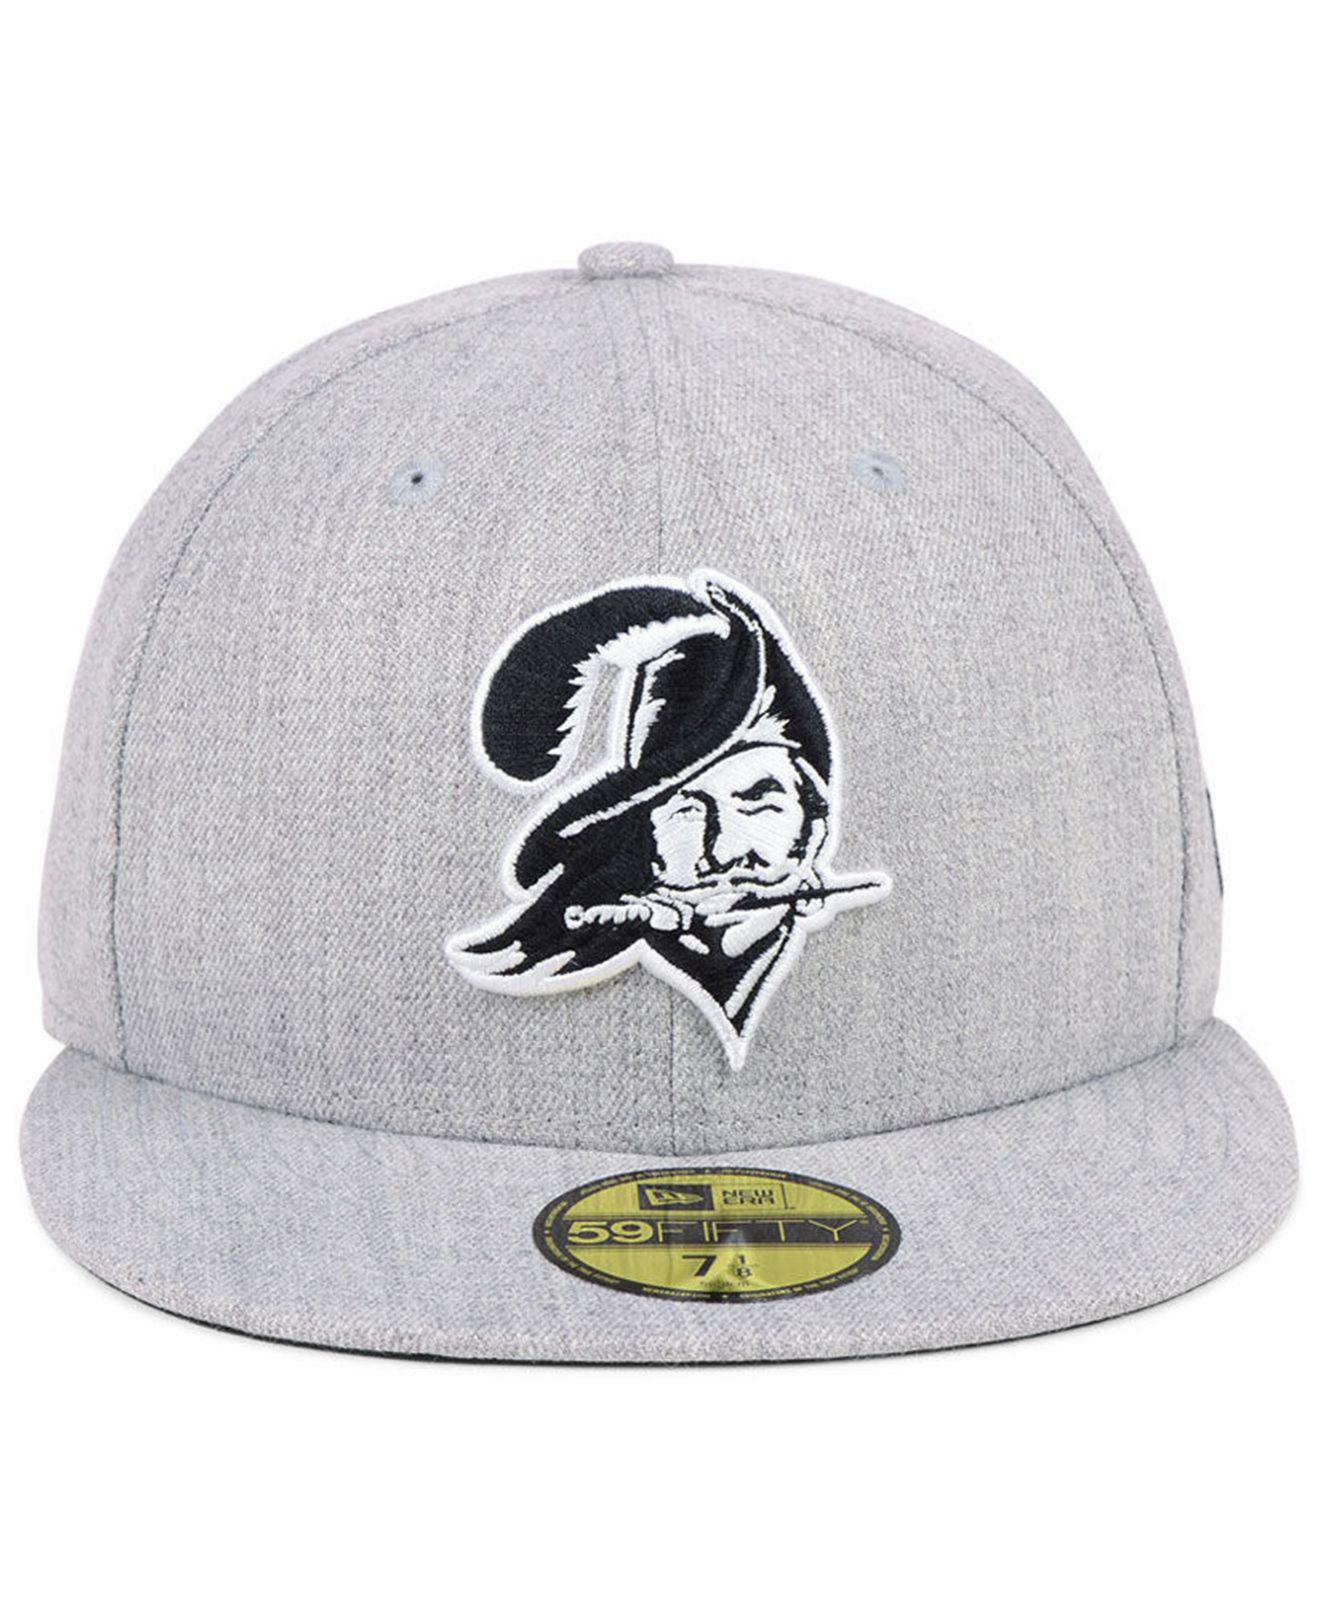 cheaper 11524 9f0b3 ... order lyst ktz tampa bay buccaneers heather black white 59fifty fitted  cap in white for men